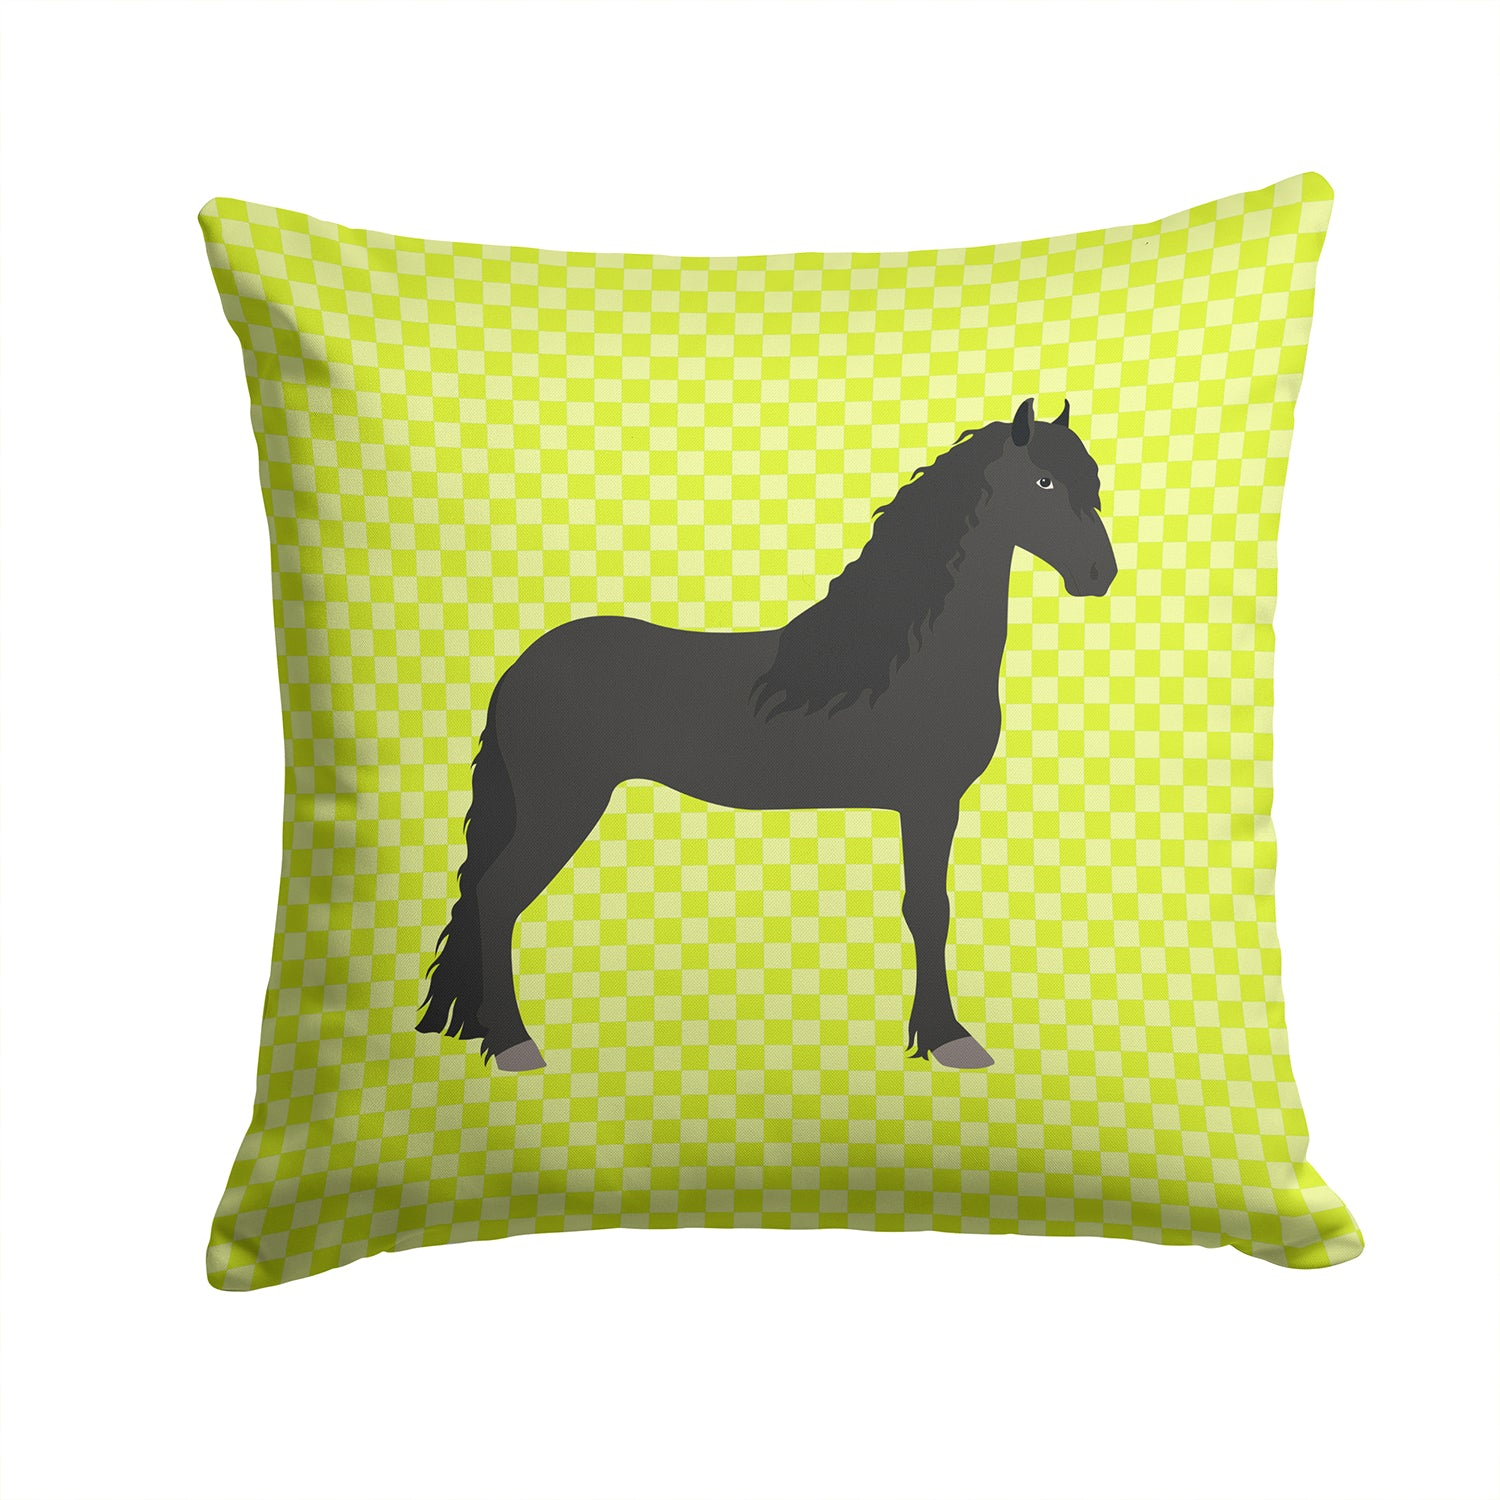 Friesian Horse Green Fabric Decorative Pillow BB7741PW1414 by Caroline's Treasures